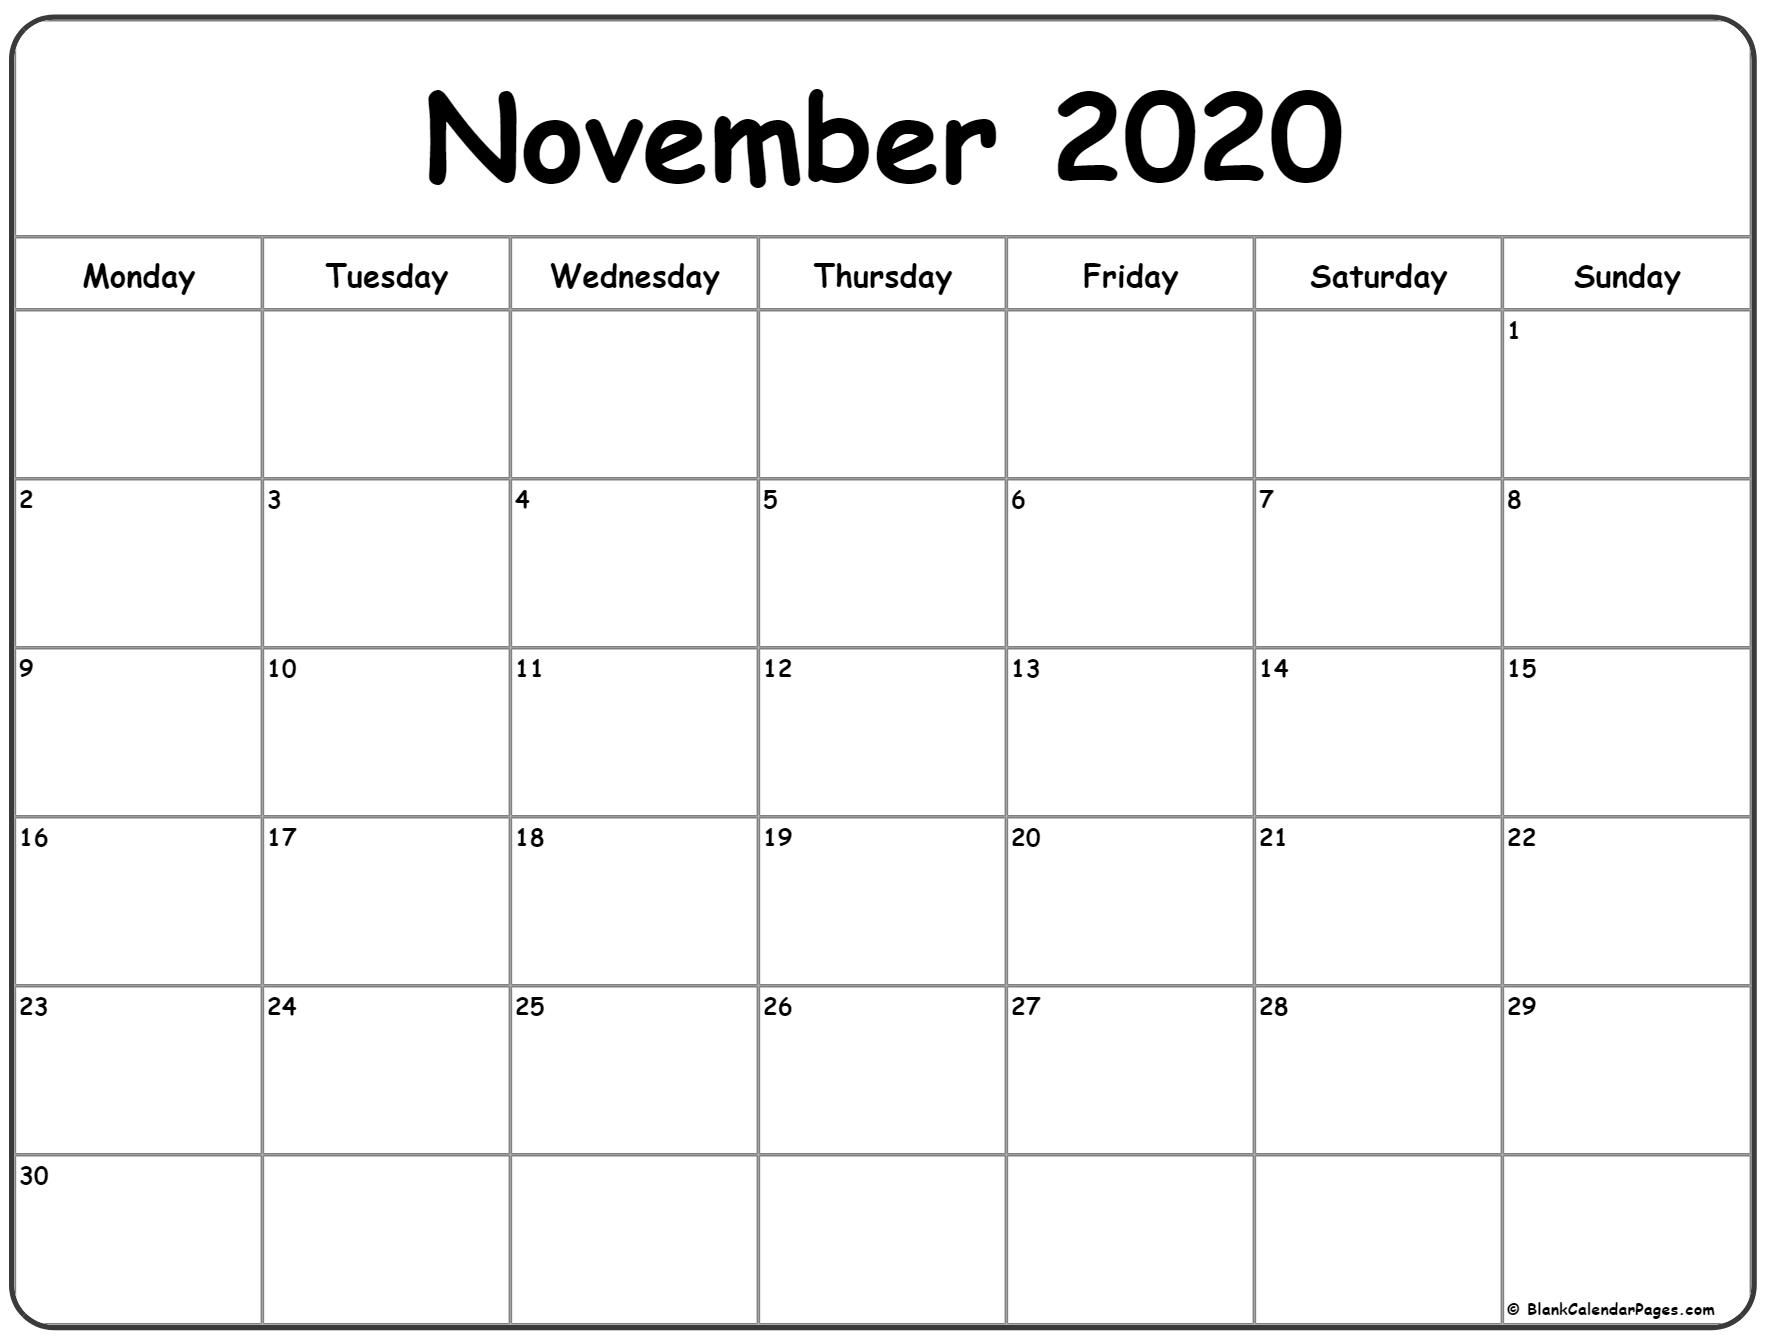 November 2020 Monday Calendar   Monday To Sunday In 2020 intended for Free 2020 Calender Starting With Monday